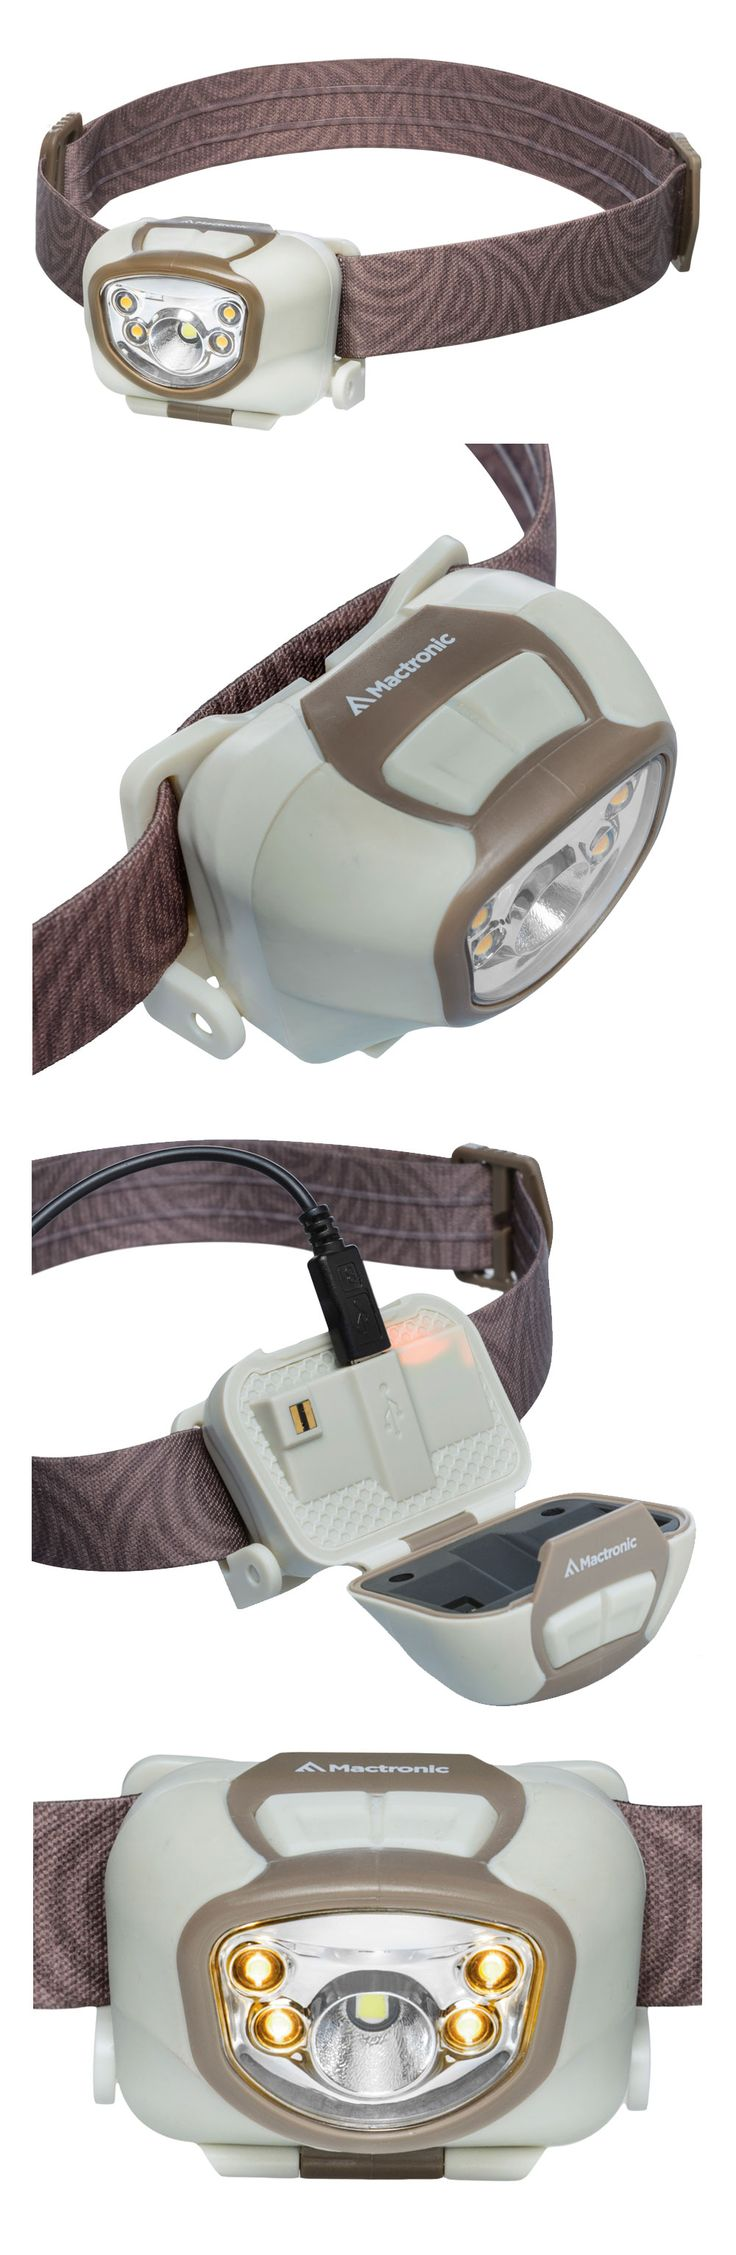 Enhanced battery life and a blistering output combine to make the rechargeable Nippo 3.3 RC the series flagship headlamp. A Cree 330 lm LED provides a powerful spot beam, blazing your trail for 84 meters. Switch on the 4 Nichia warm light LEDS for a soft floodlight effect that creates a warm glow for 8 meters and up for 8 hours. Insert the USB cable directly into the lamp's head for a quick recharge without an additional battery cage or cable.  mactronic.pl